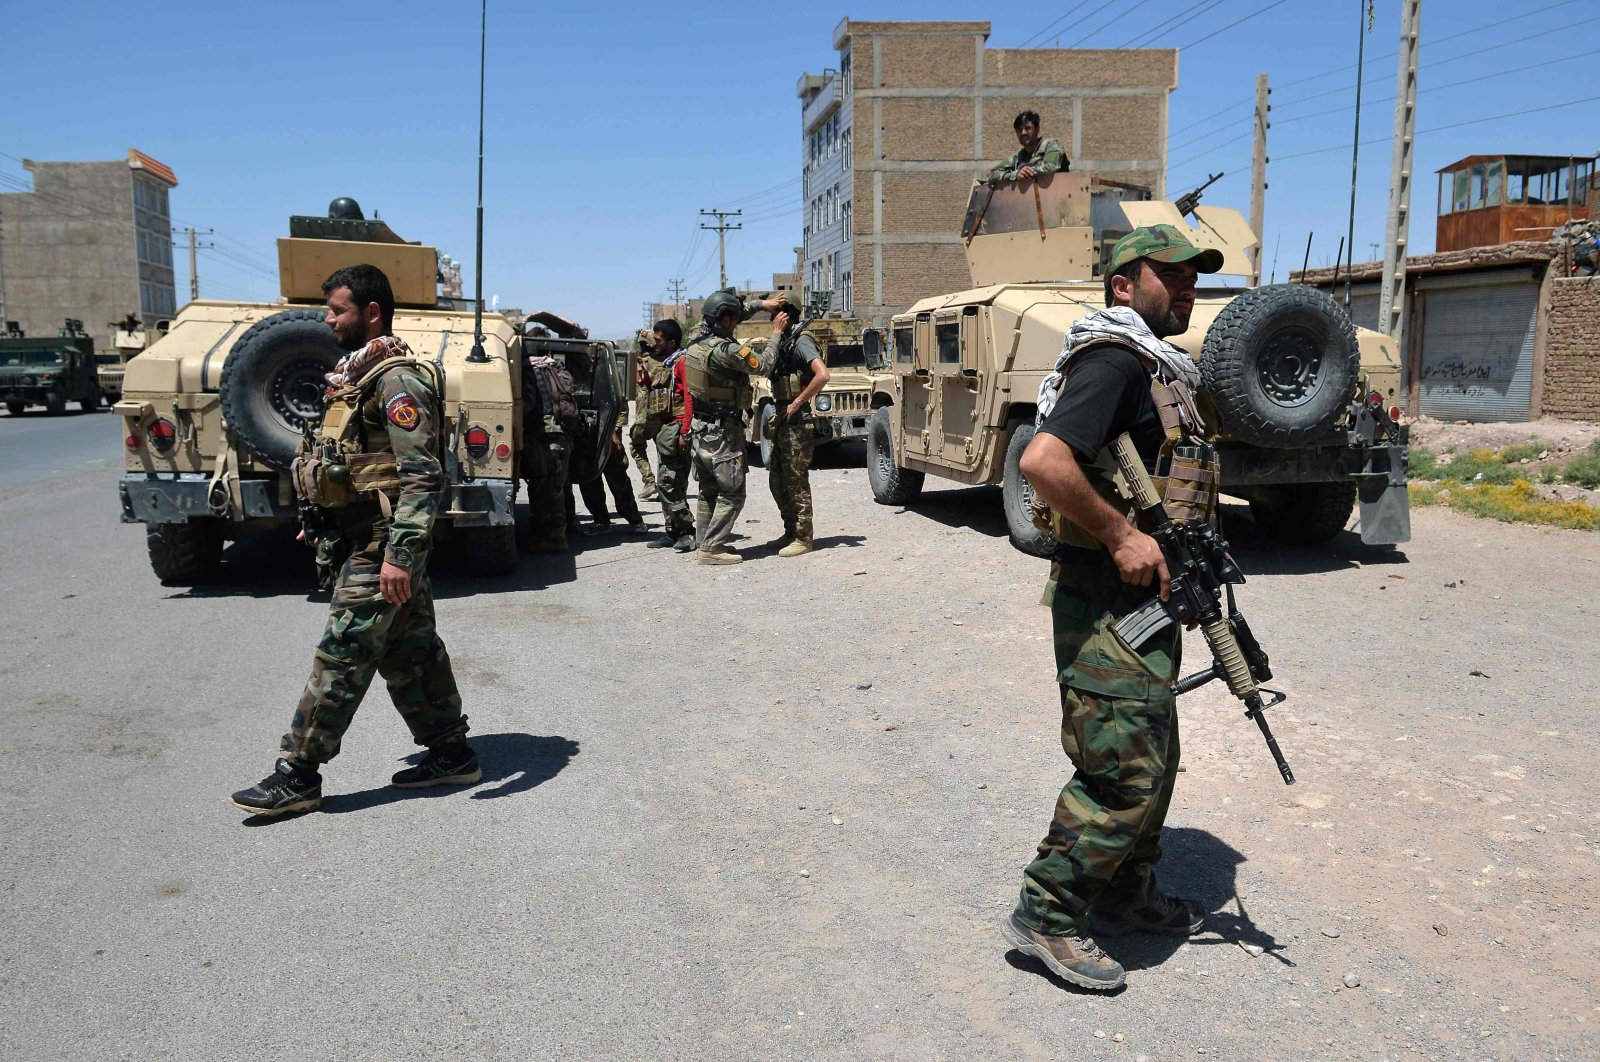 Afghan National Army commando forces walk along a road amid ongoing fighting between Taliban and Afghan security forces in the Enjil district of Herat province, Aug. 1, 2021. (AFP Photo)